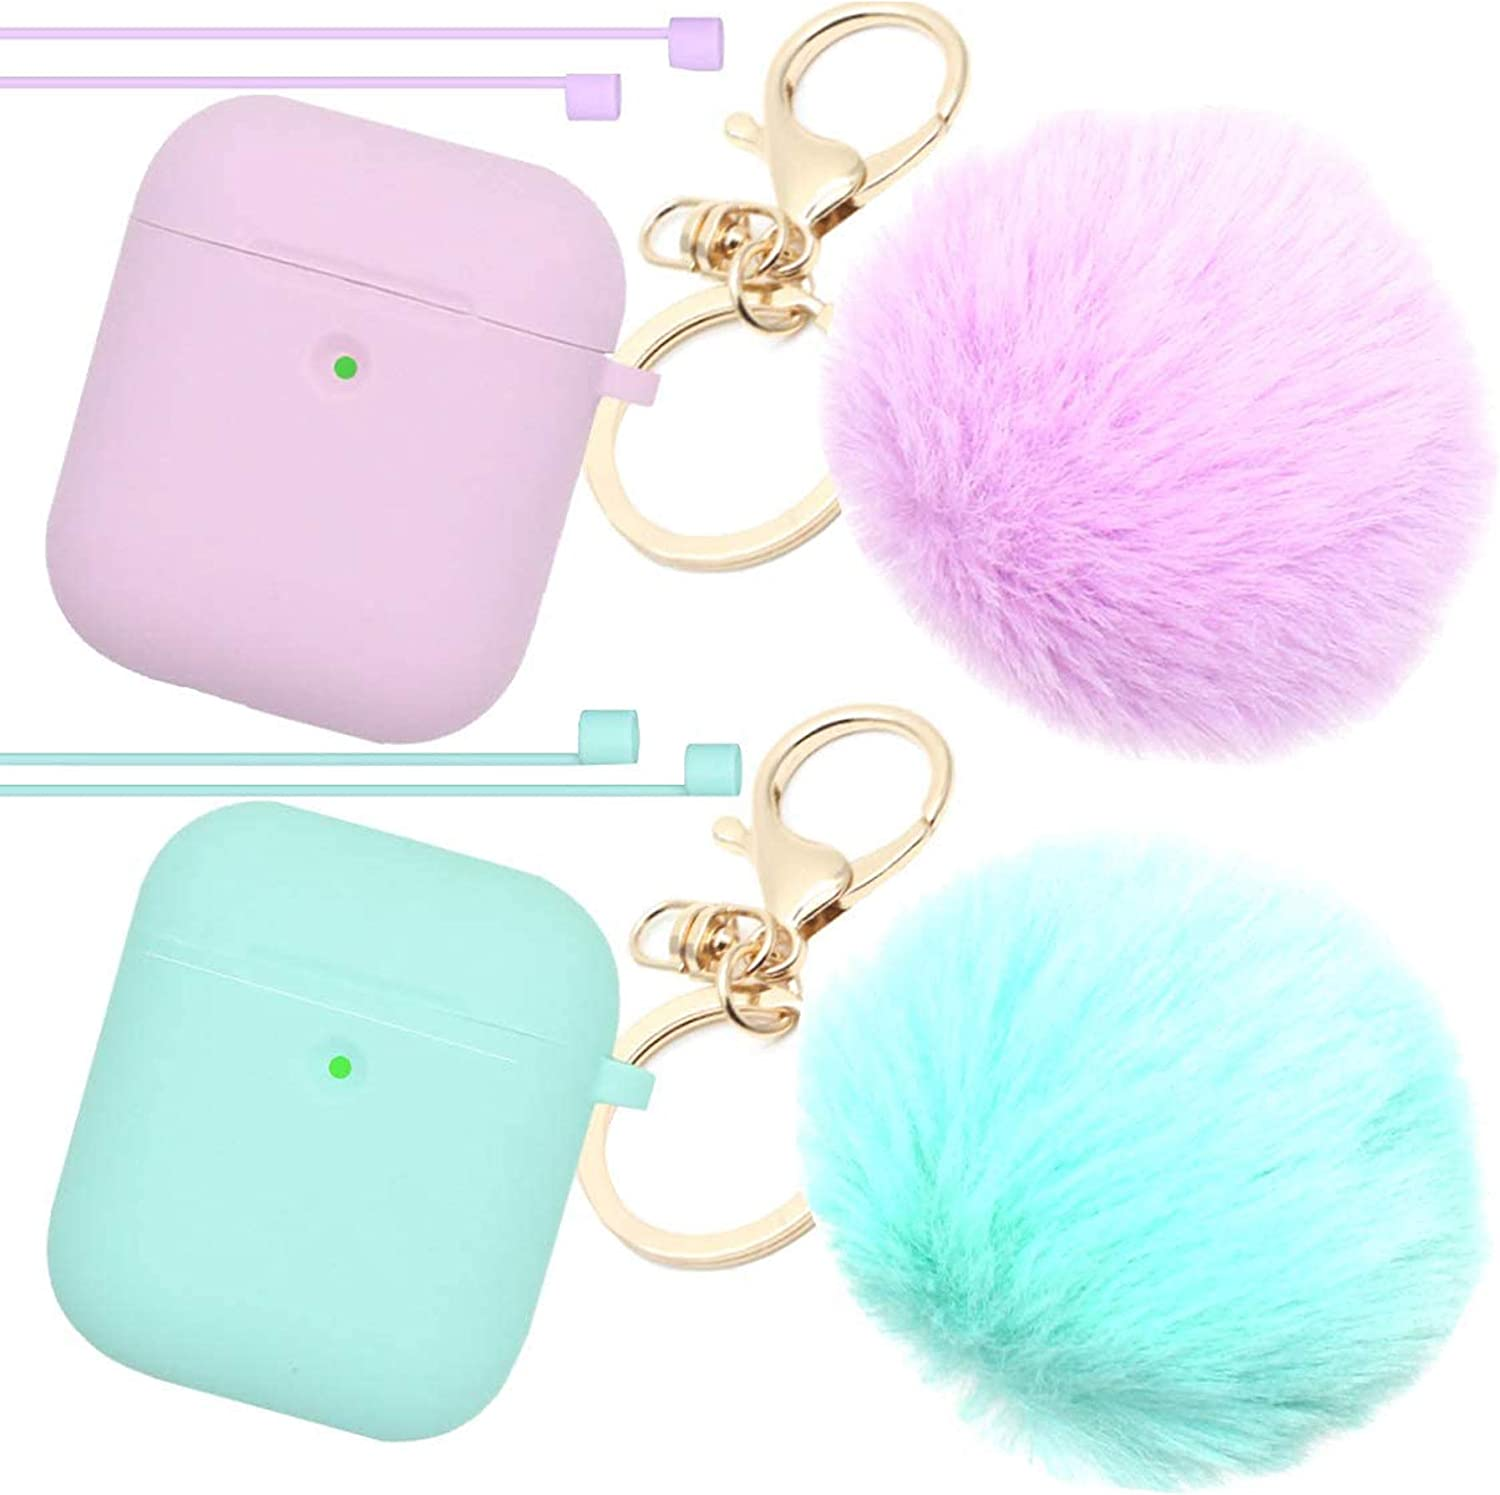 Airpods Case Newest Upgrade (Front LED Visible) ANTARCTICASE Skin Drop Proof Protective Pompom Keychain Case Cover Silicone for Apple Airpods 2&1 Charging Cute Fur Ball Keychain (Purple + Mint Green)